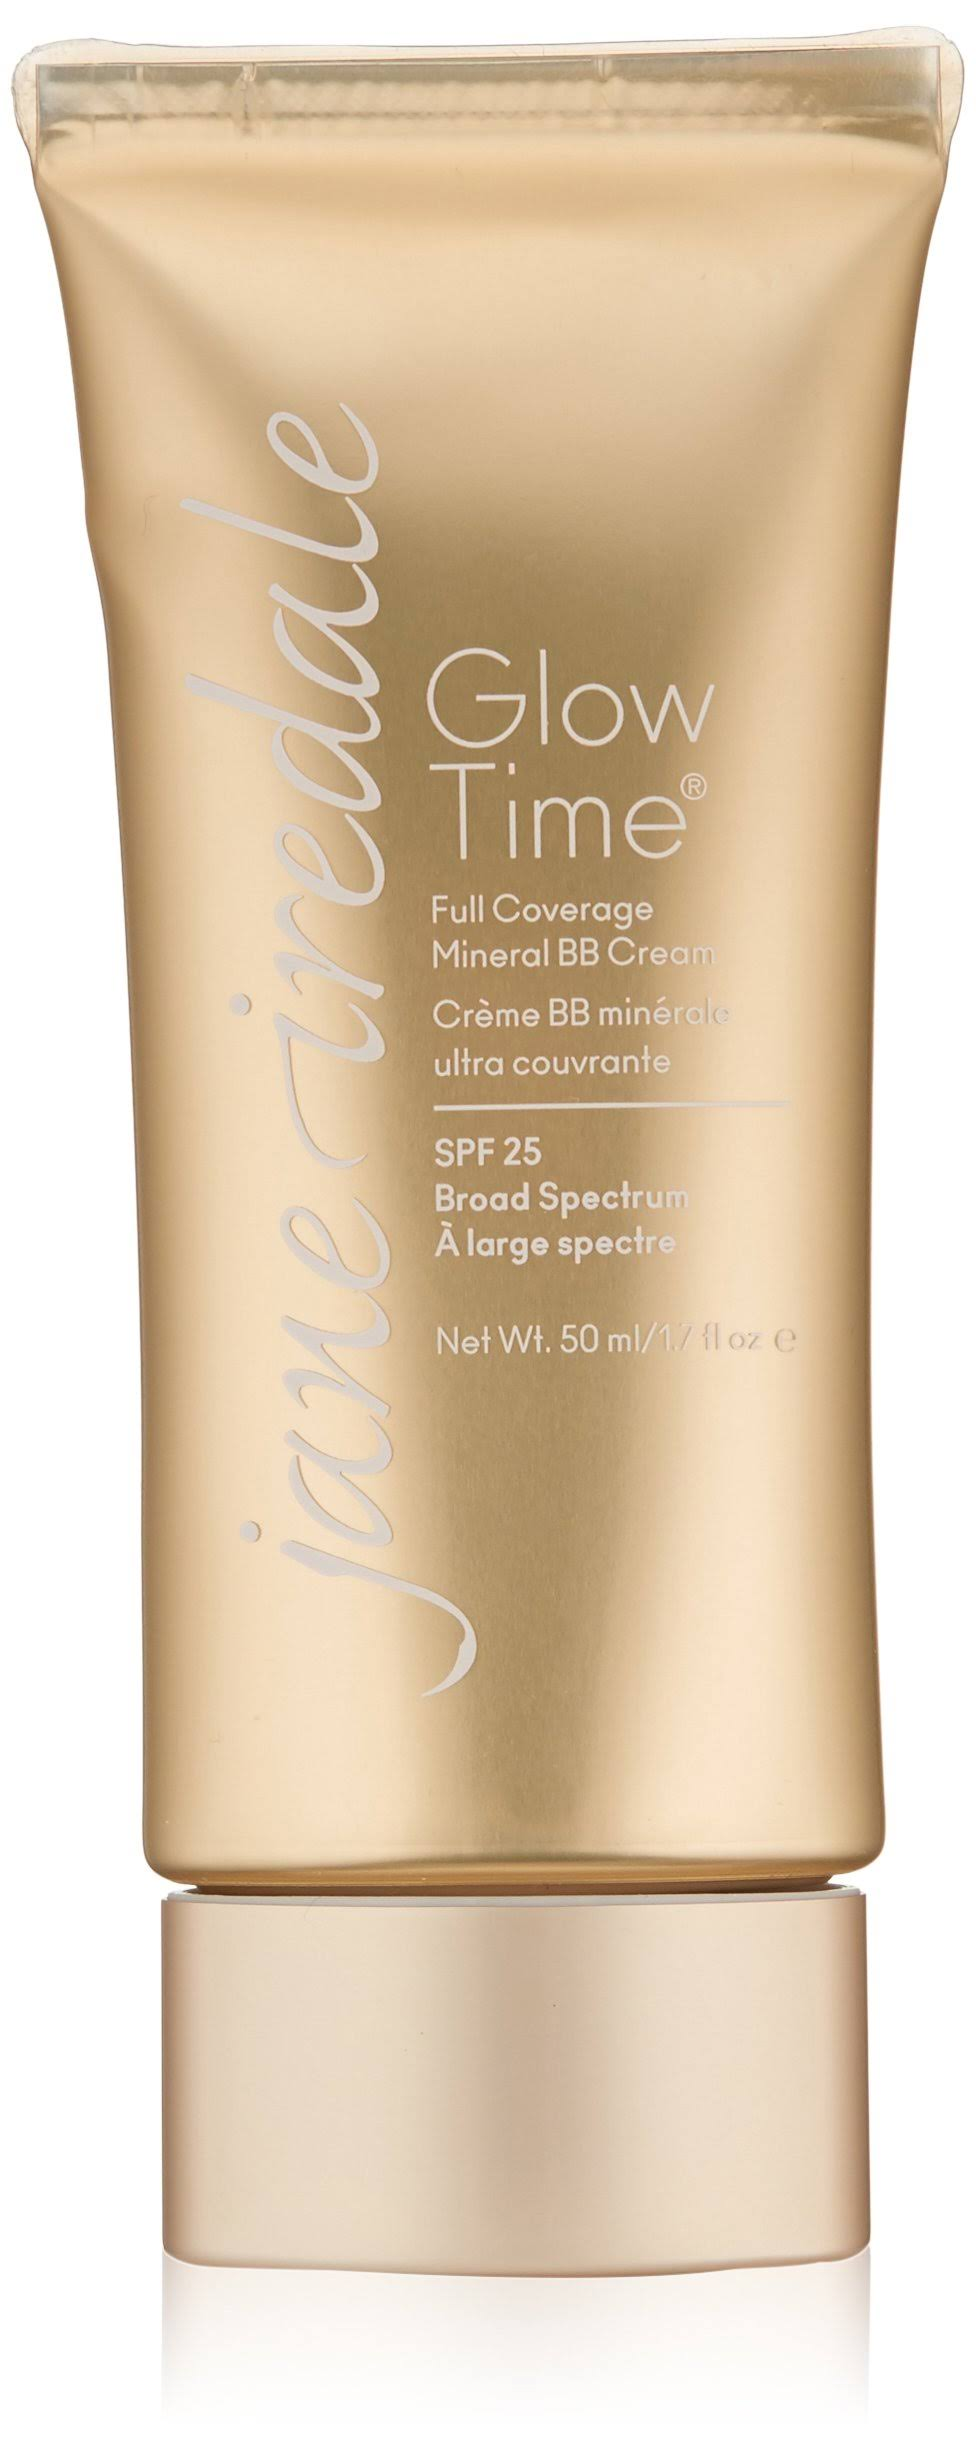 Jane Iredale Glow Time Full Coverage Mineral BB Cream, SPF 25, BB5